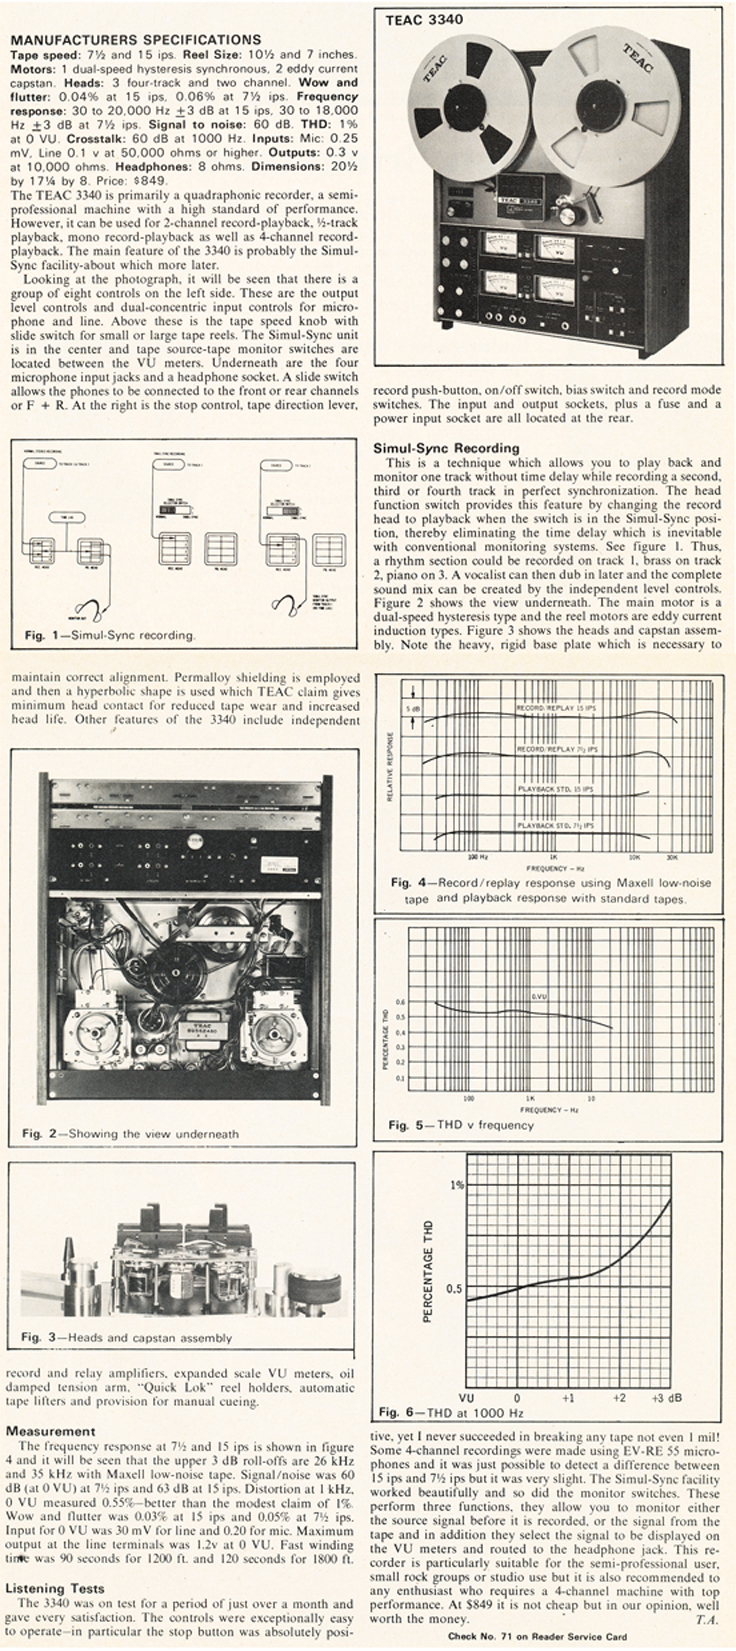 1973 review of the original Teac A-3340 4 track reel to reel tape recorder in  the Museum of Magnetic Sound Recording